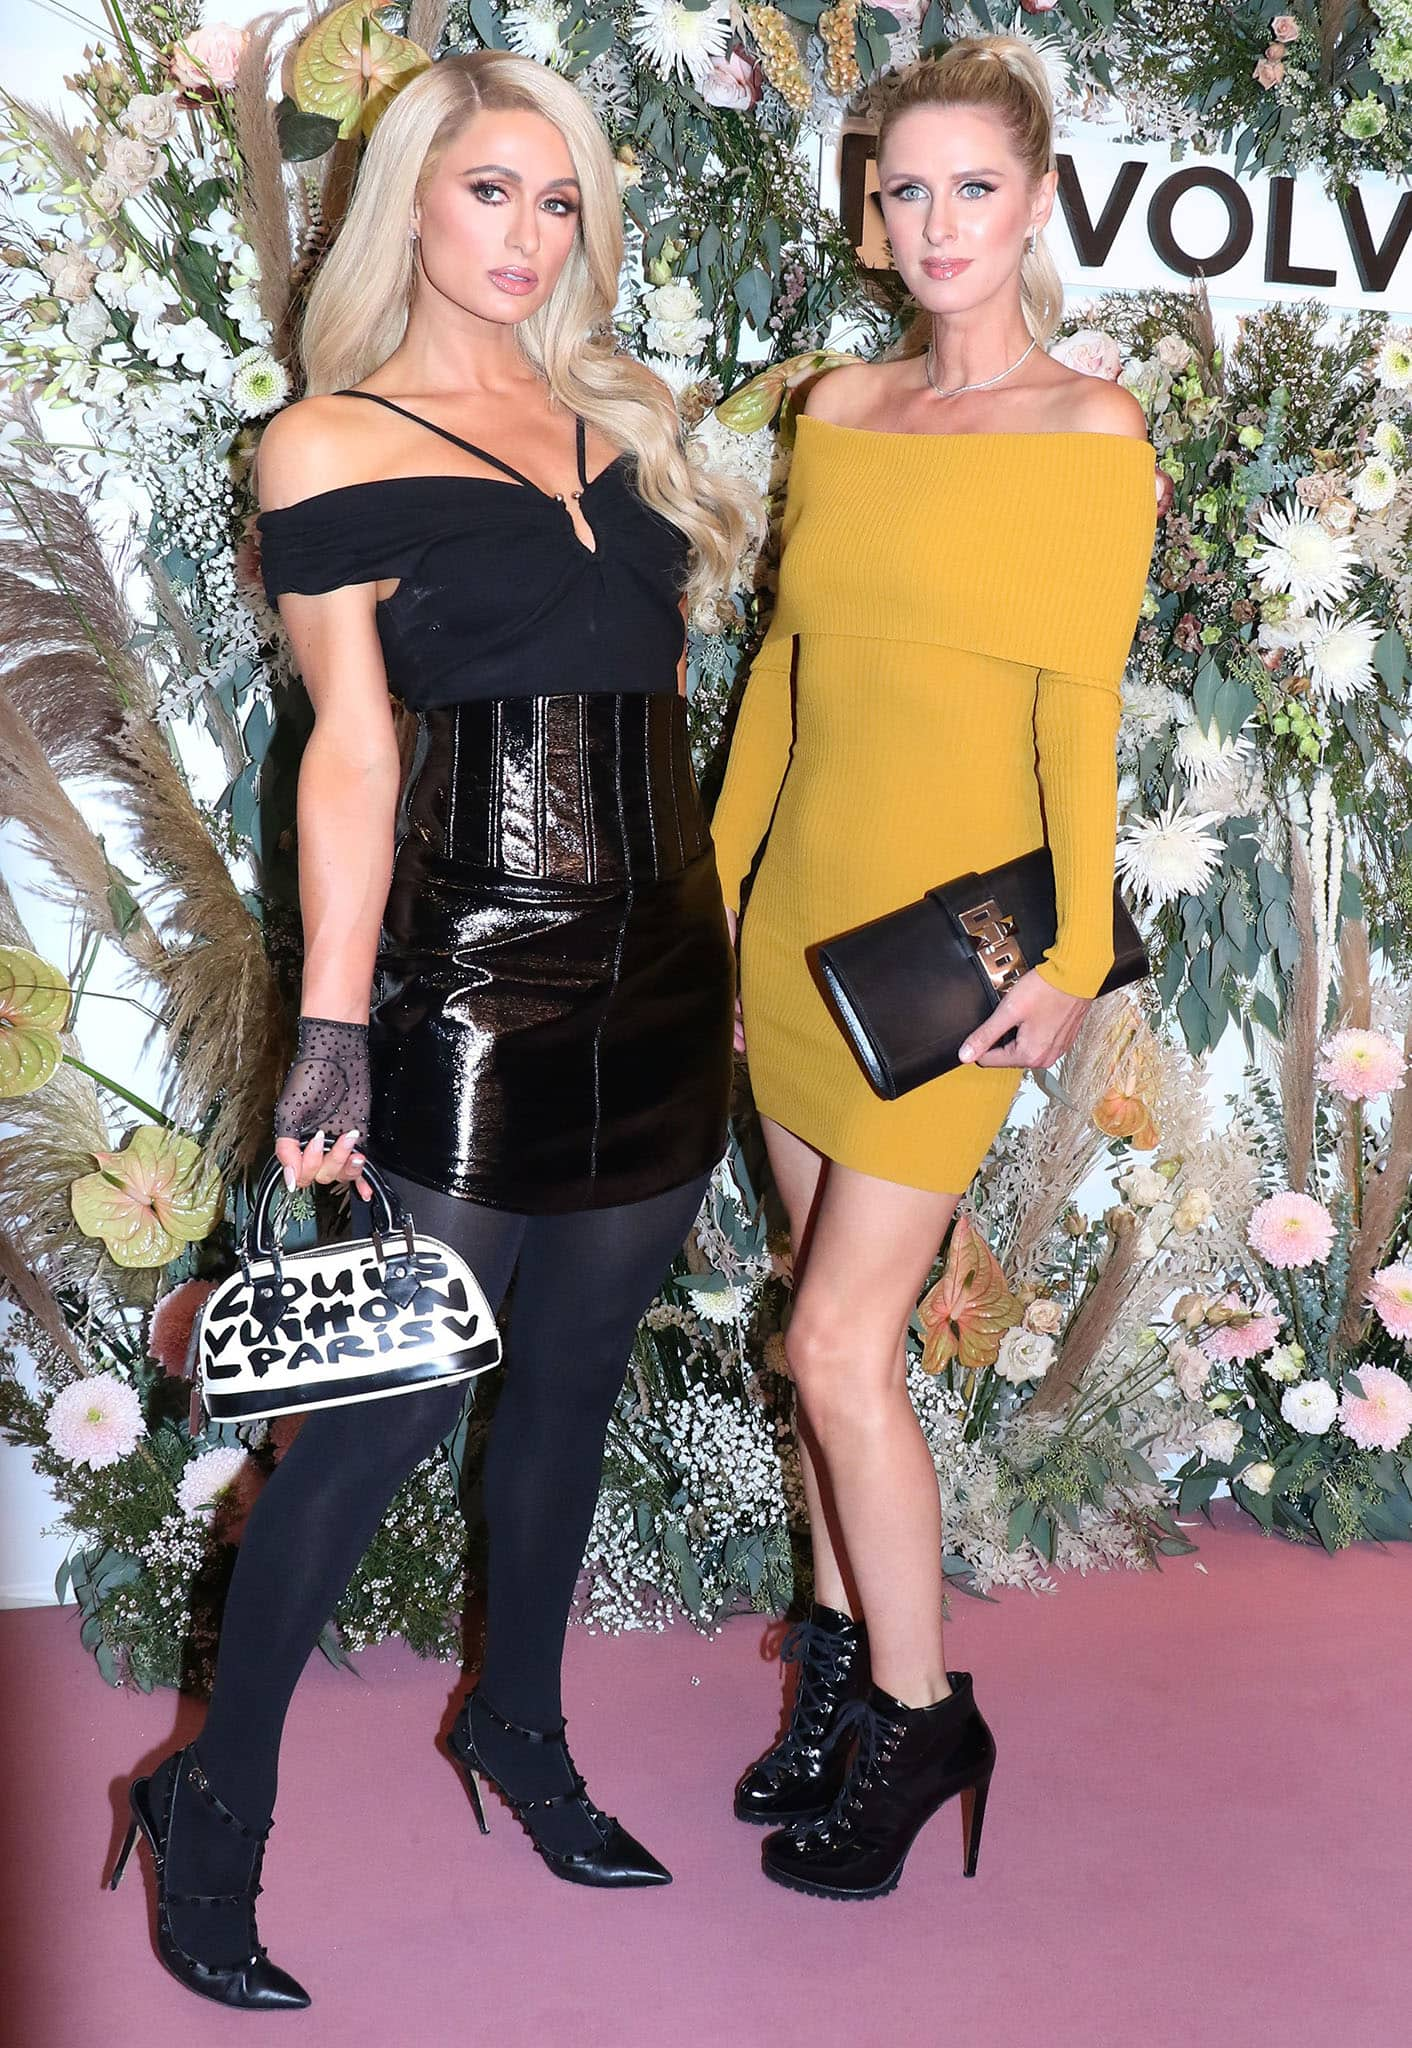 Paris and Nicky Hilton at theREVOLVE Gallery Private Event held at Hudson Yards in Manhattan on September 9, 2021